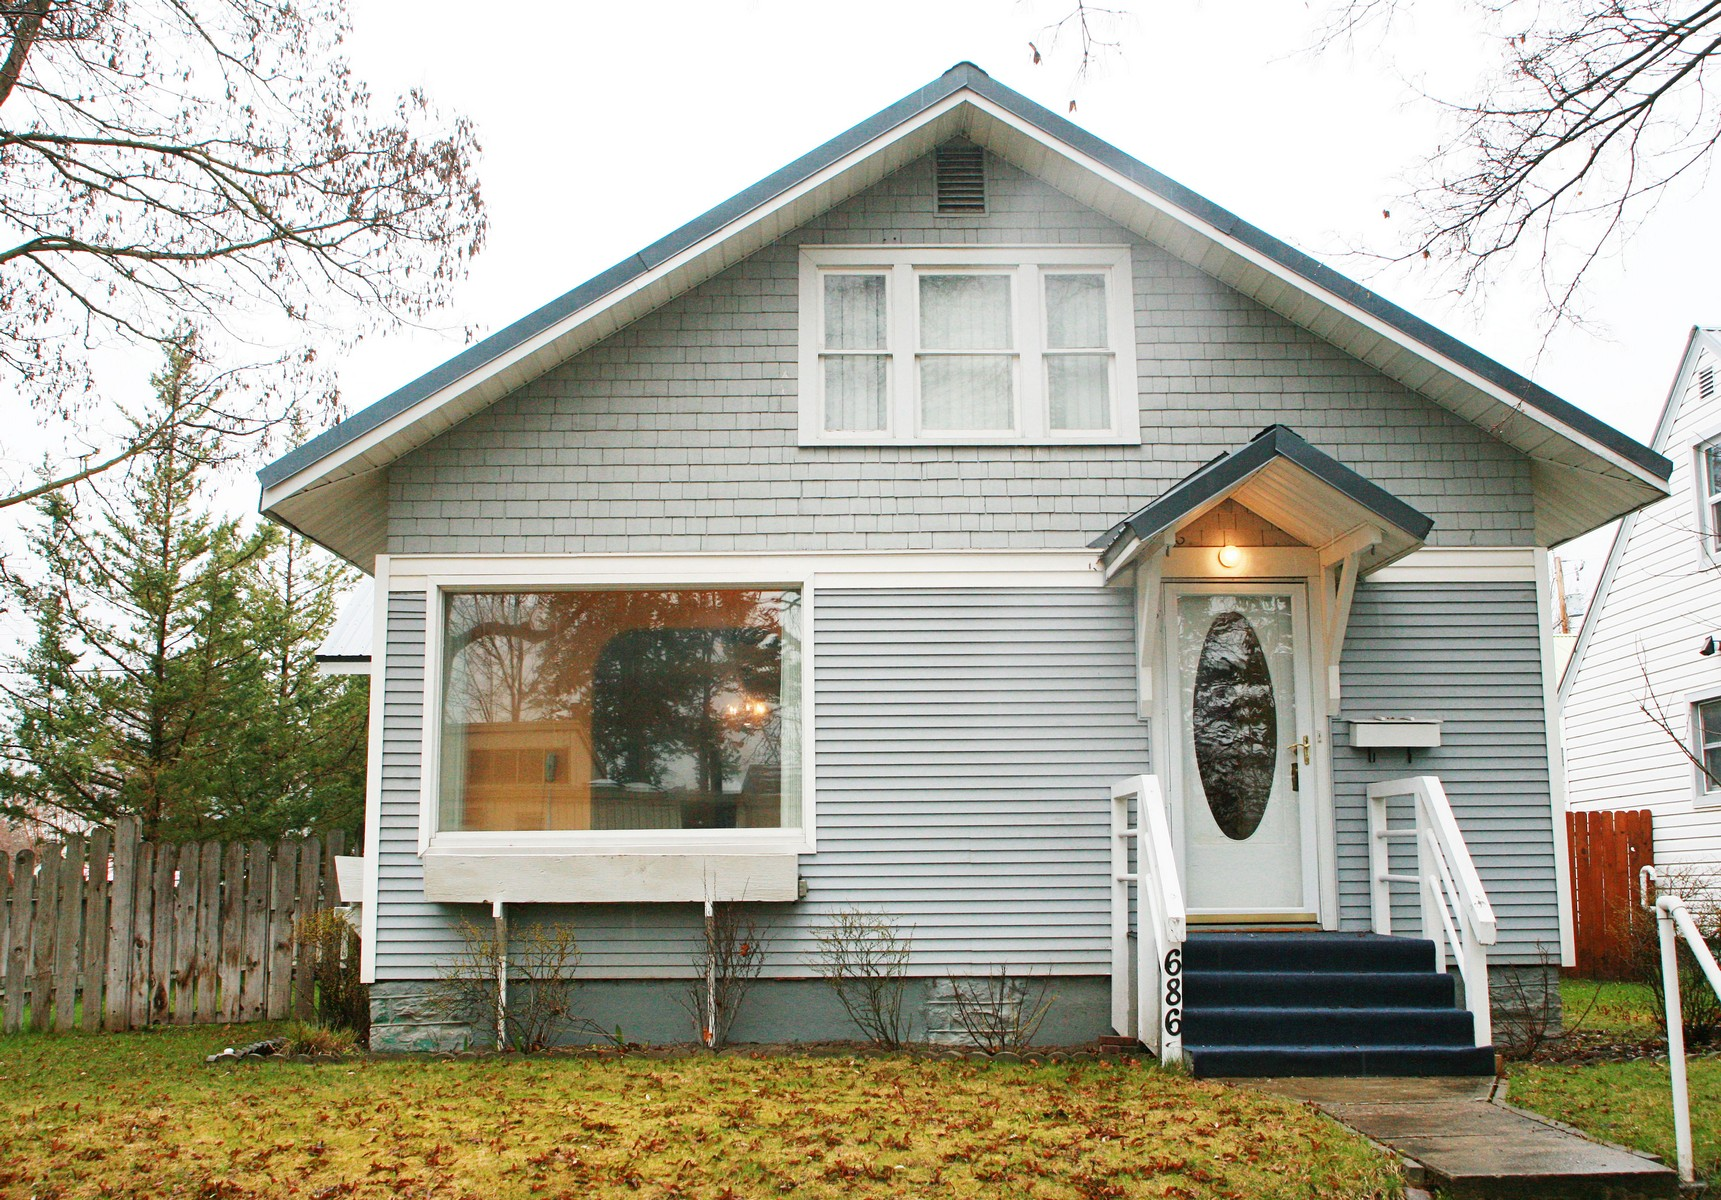 Single Family Home for Sale at 686 2nd Ave East North, Kalispell, MT 59901 686 2nd Ave Ea Kalispell, Montana 59901 United States